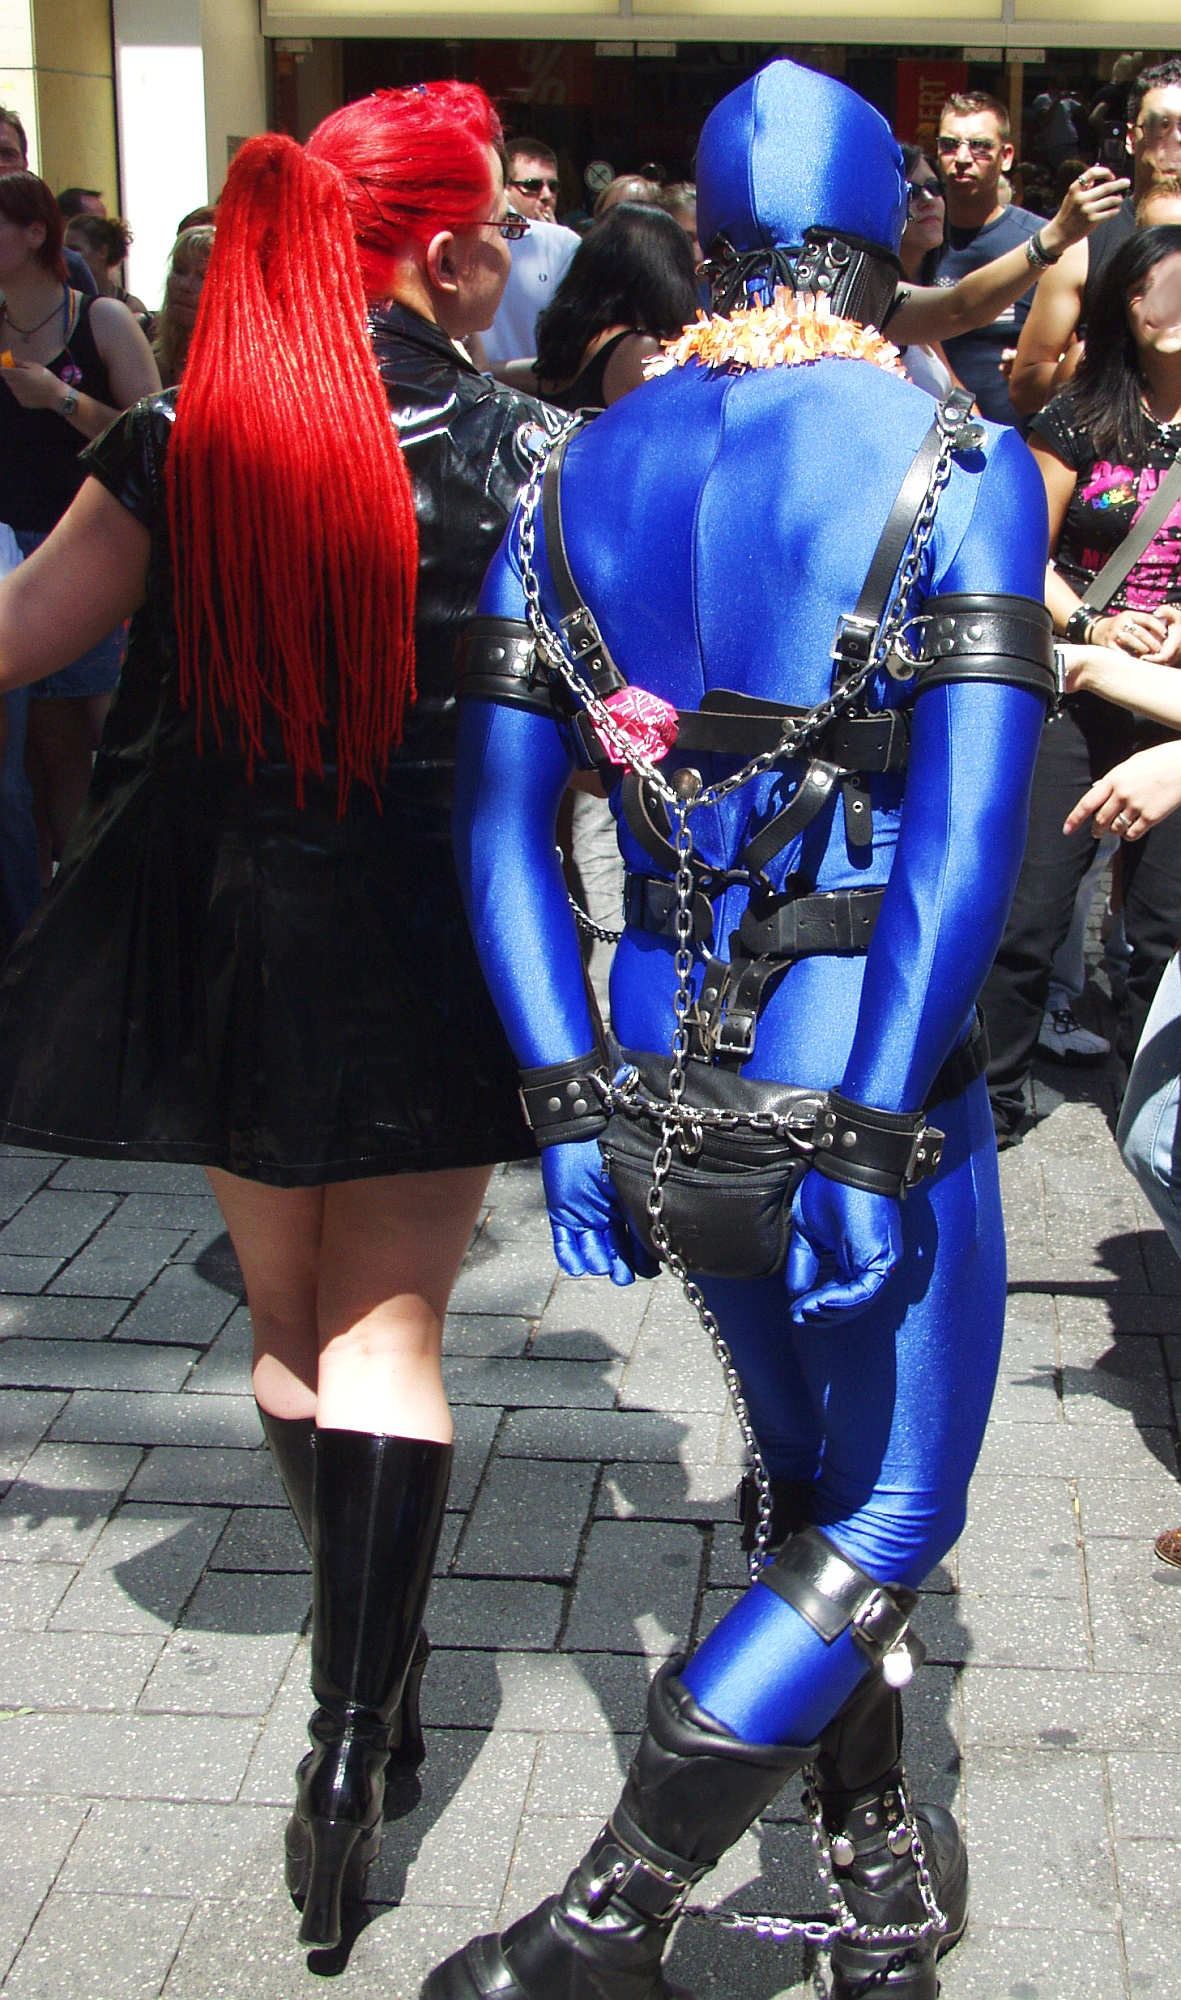 Description csd 2006 cologne bdsm 07